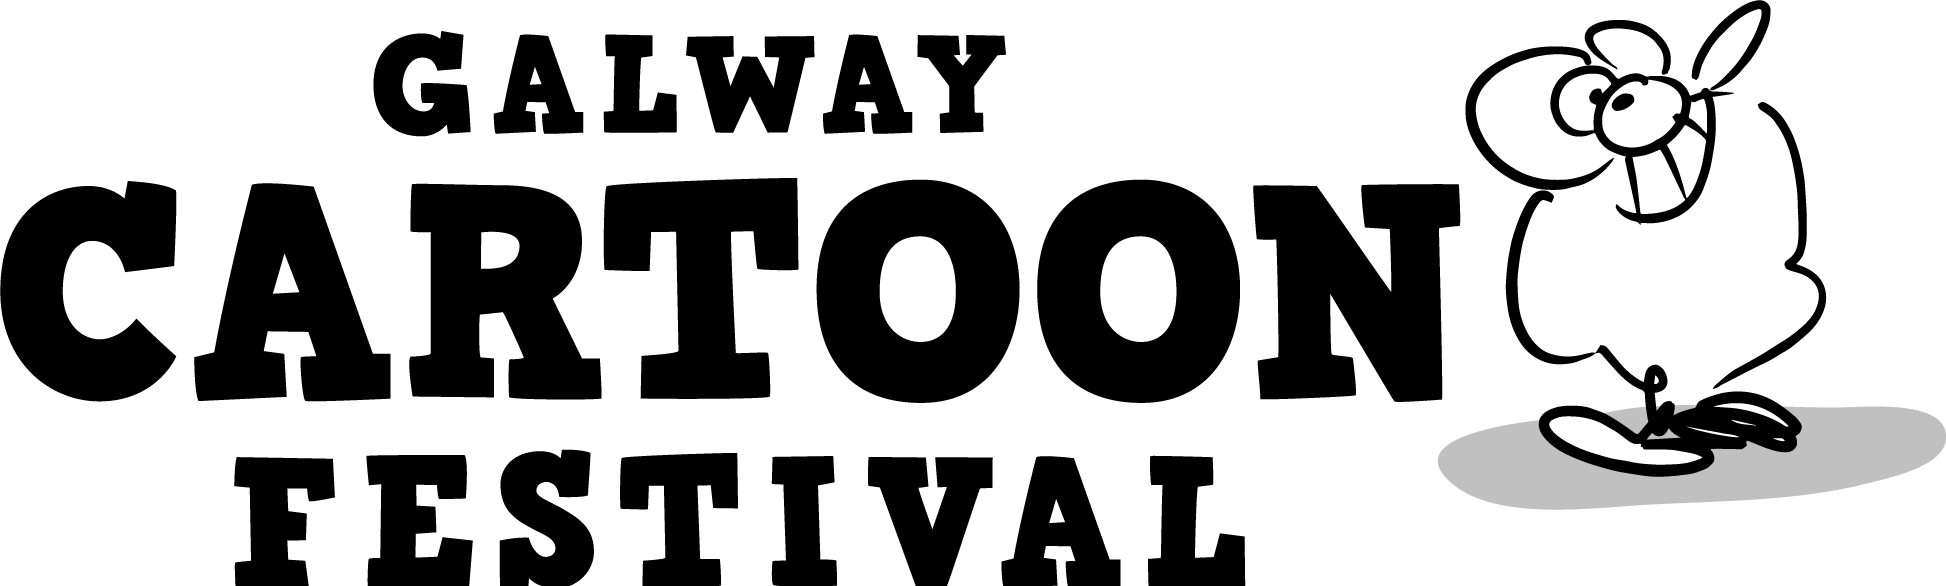 galway cartoon festival 2018